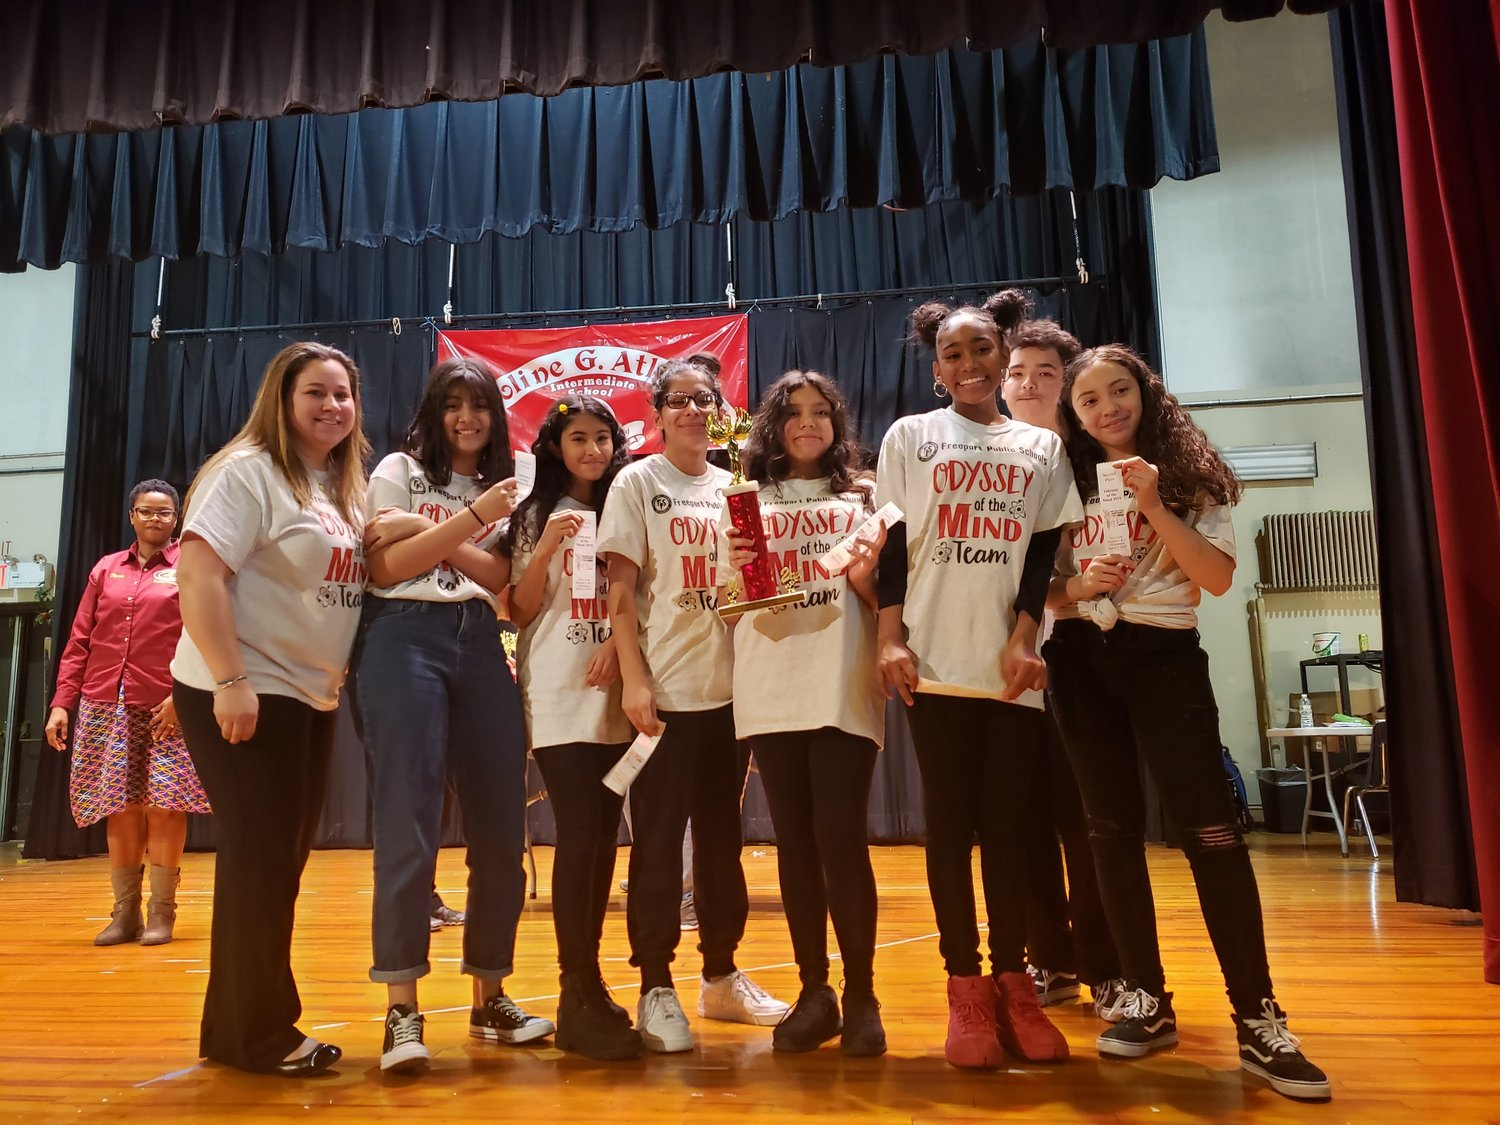 Caroline G. Atkinson Intermediate School students received the second-place trophy for their Opposites Attract Division II presentation.